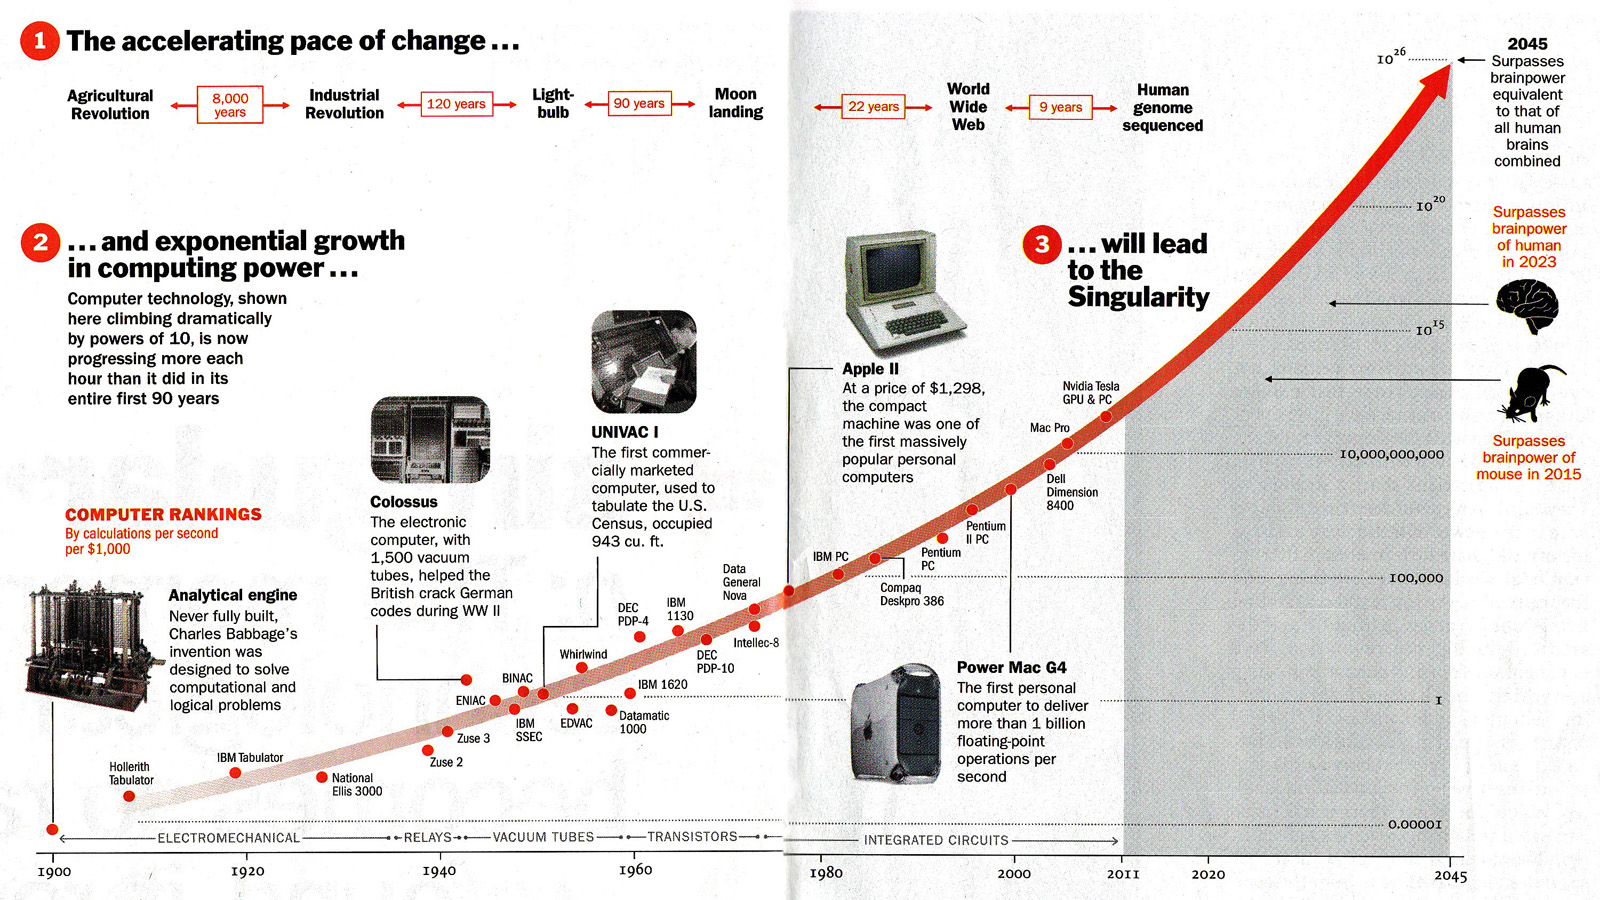 The exponential curve of technological innovations leading up to the Singularity as predicted by Ray Kurzweil in Time Magazine